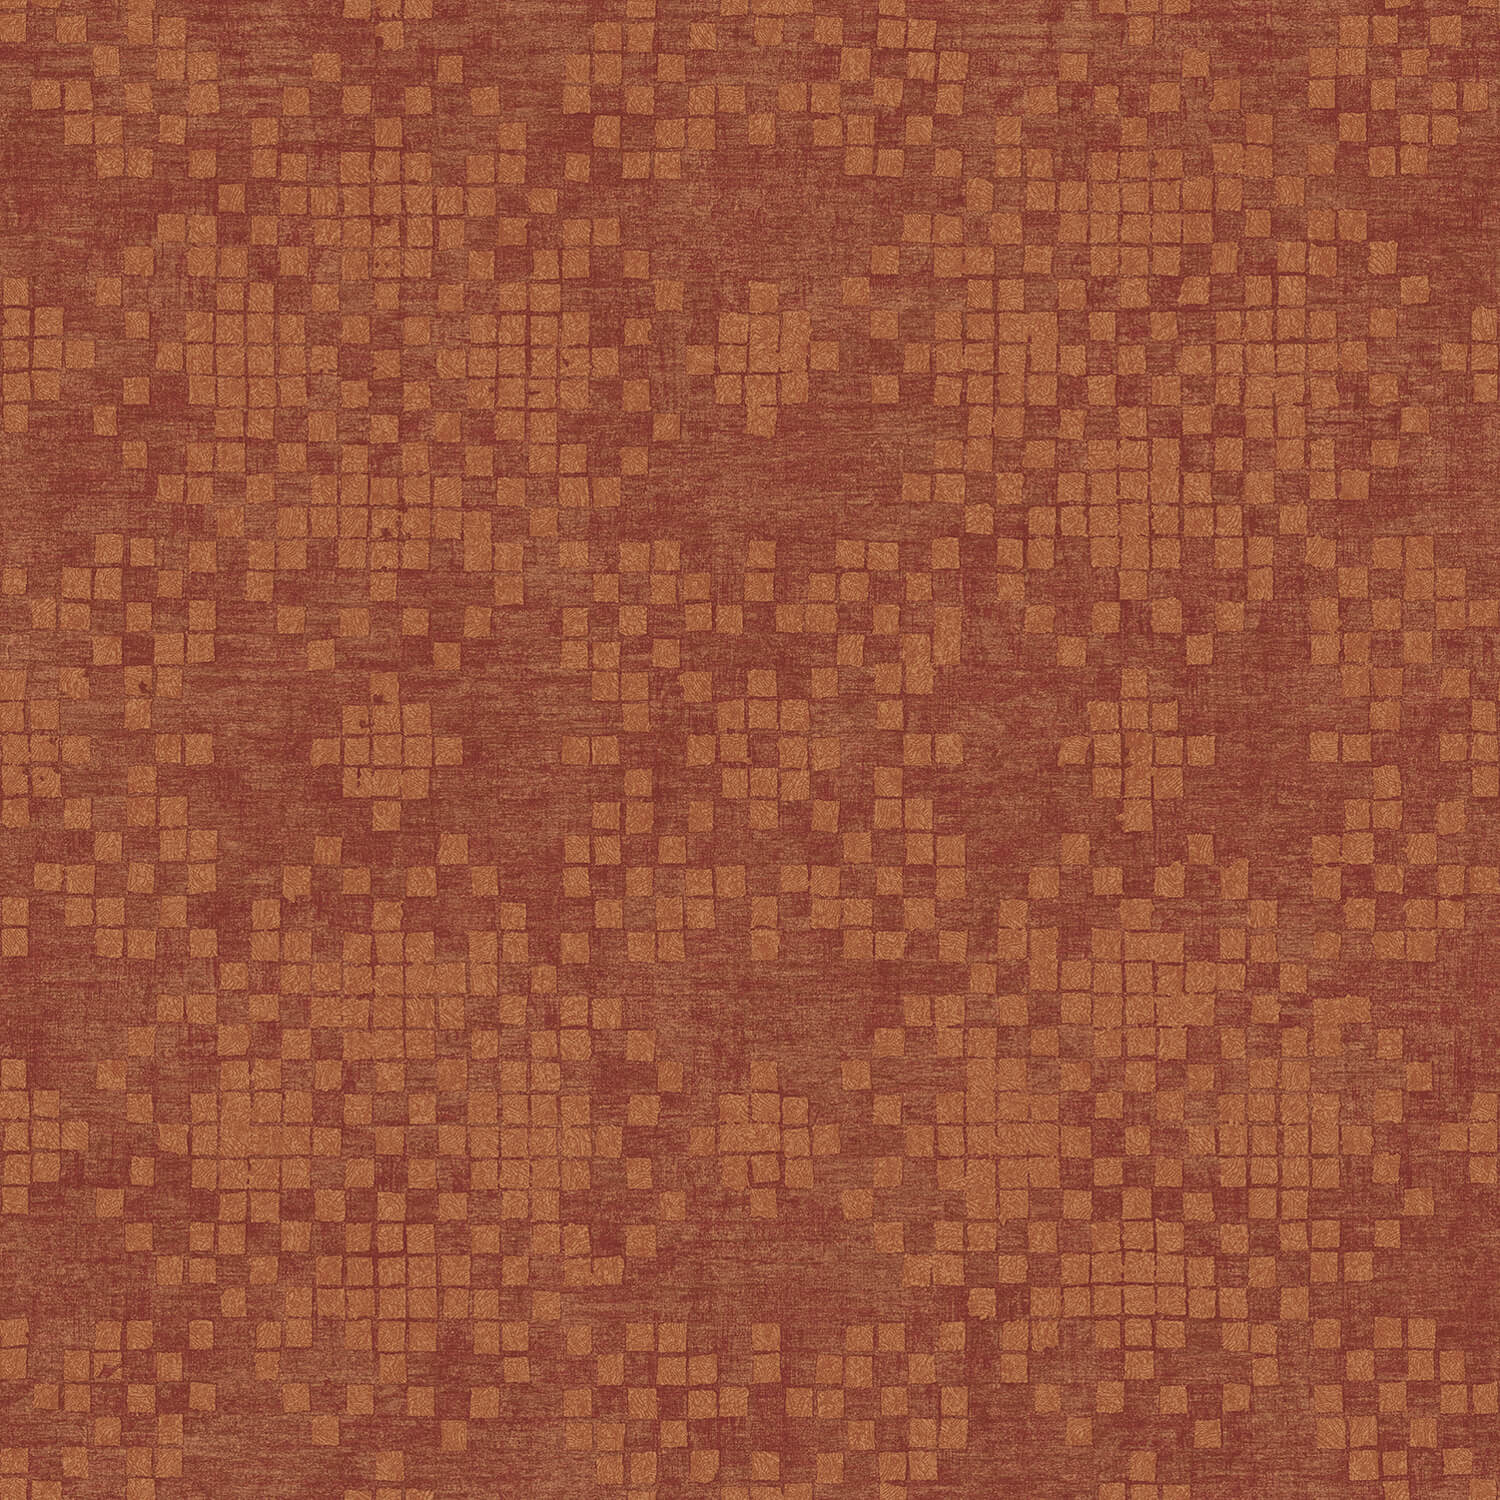 Image of Galerie Check Classic Wallpaper, Red